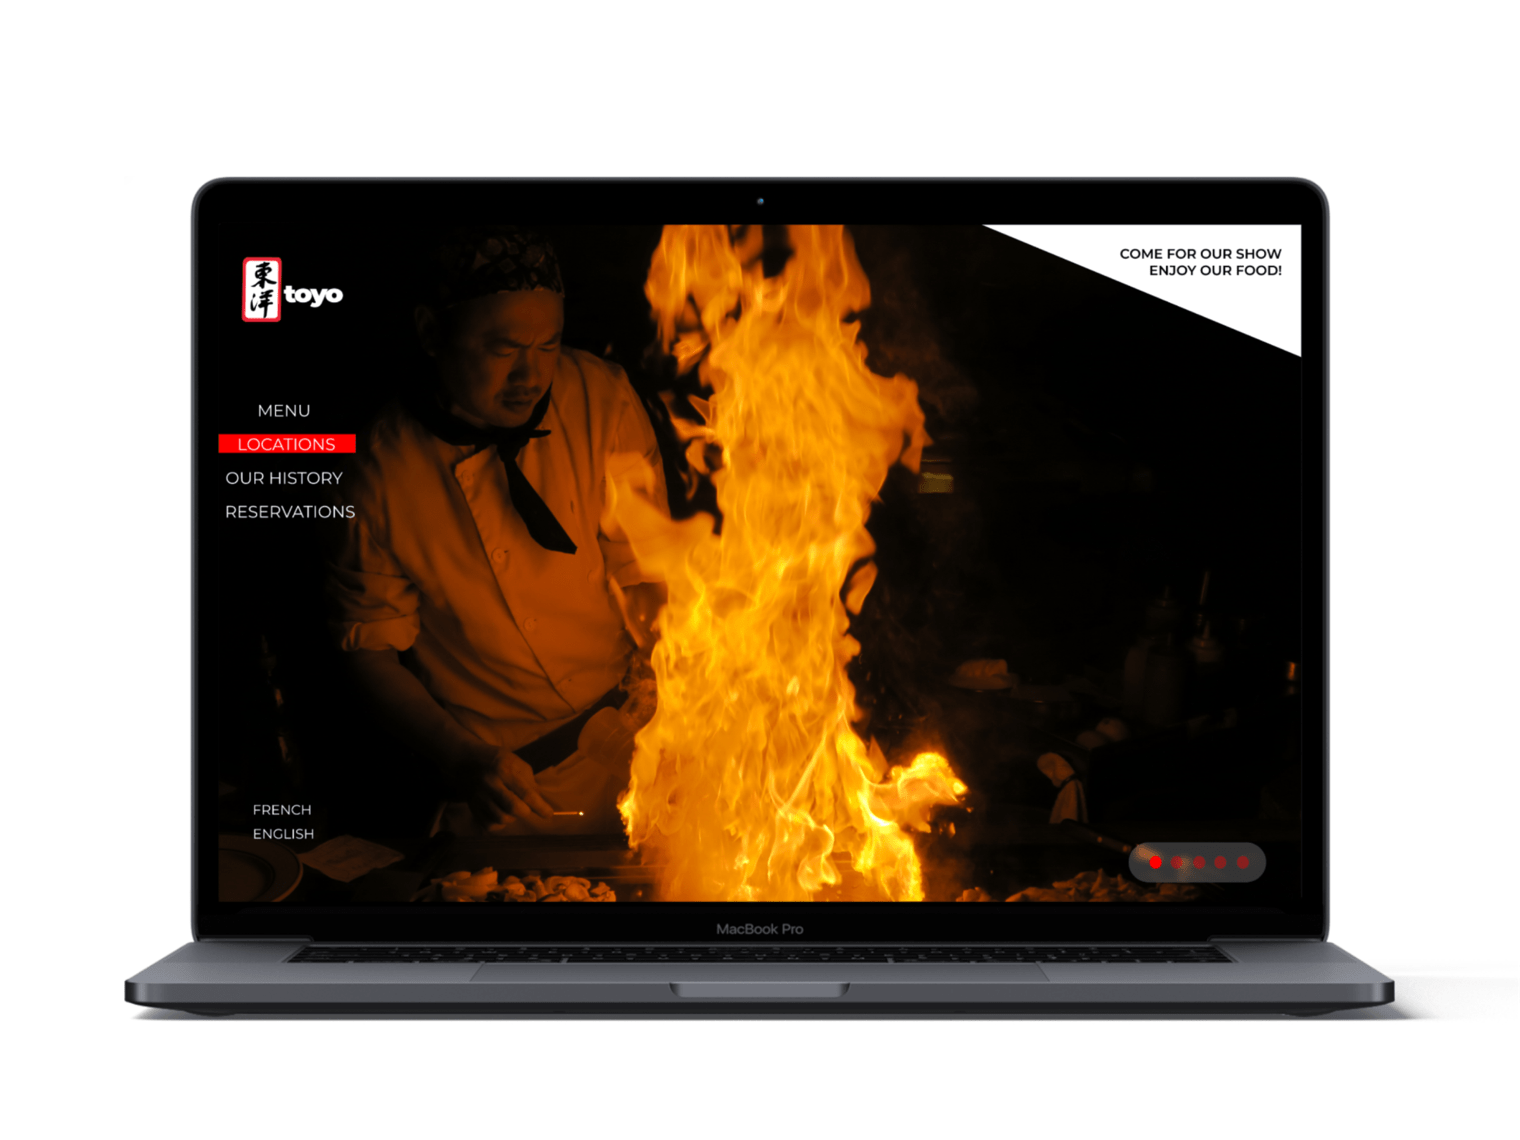 First home page design